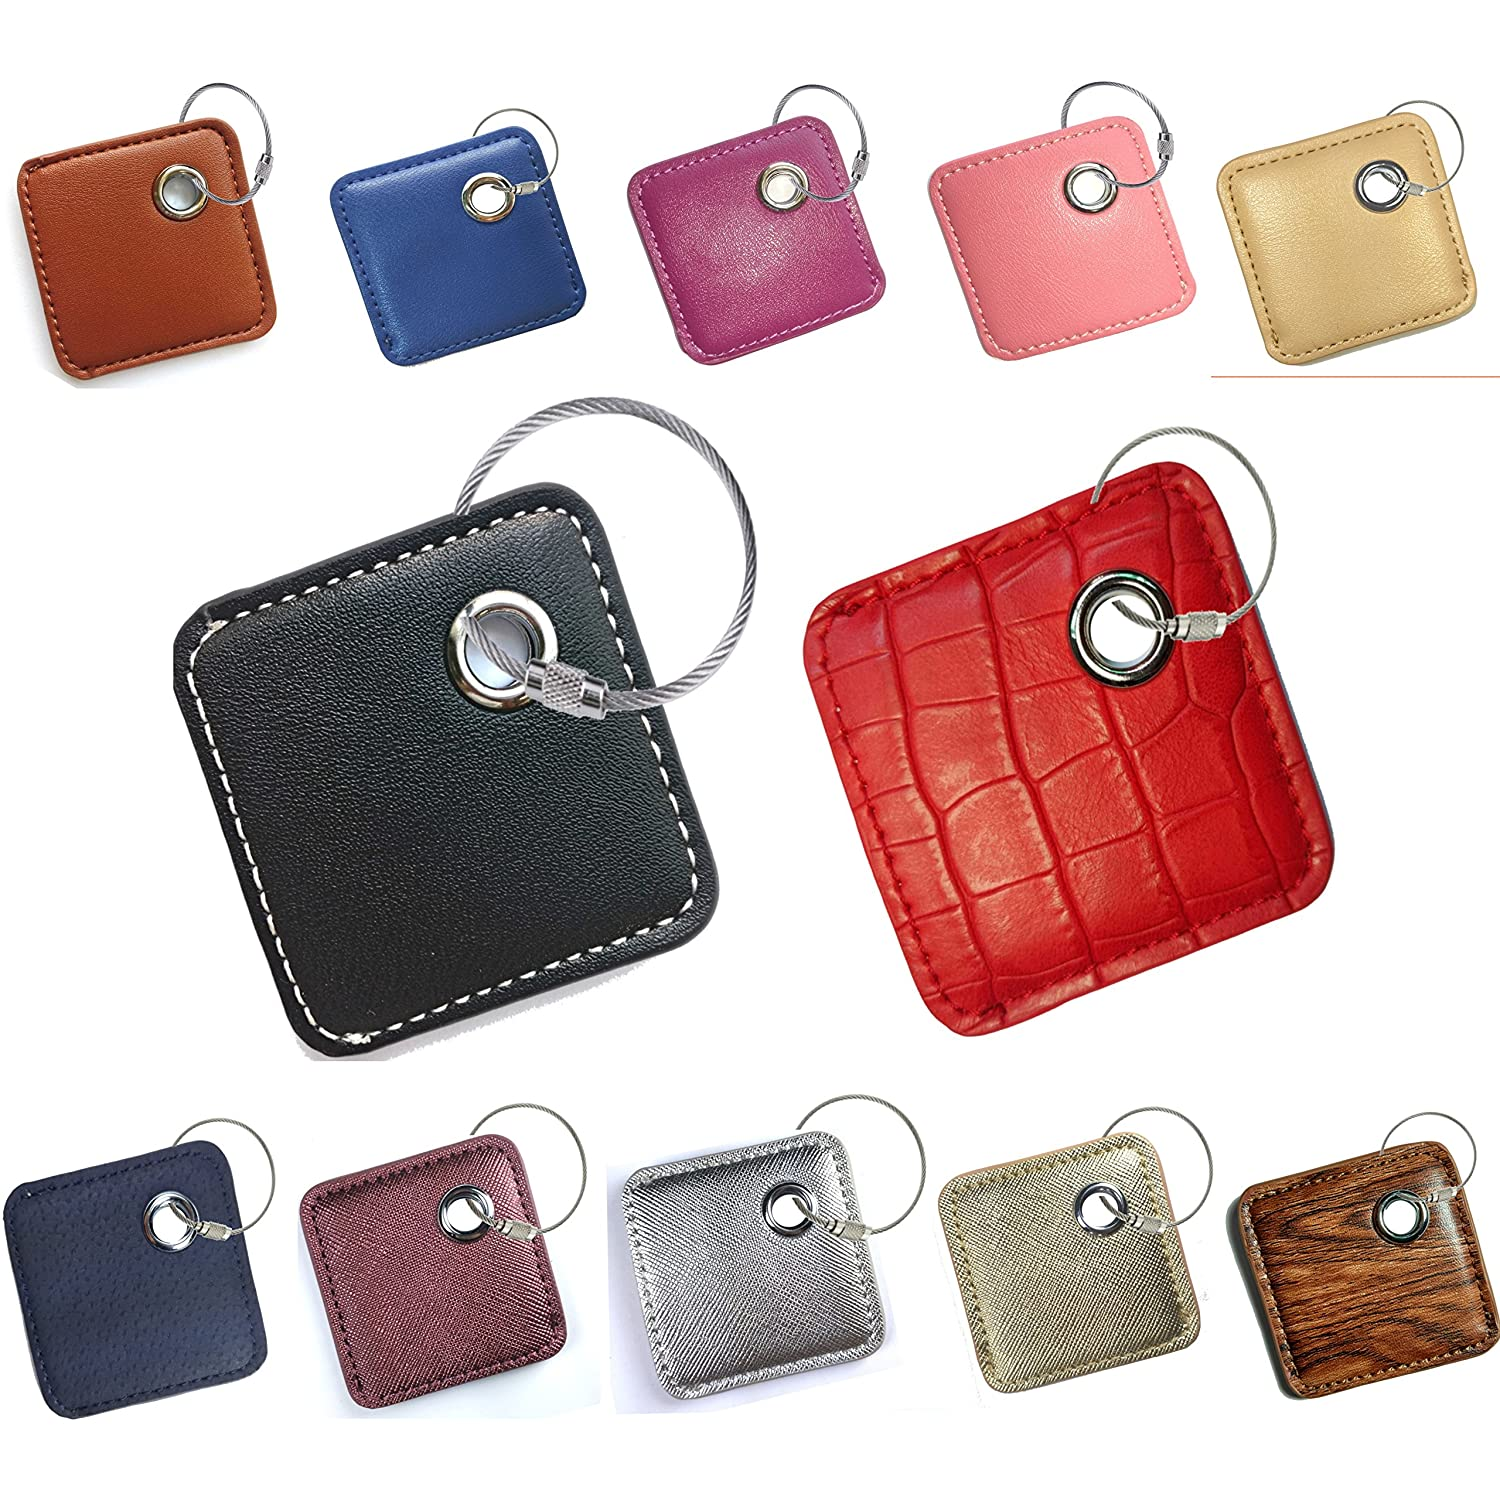 amazoncom fashion key chain cover accessories for tile skin phone finder key finder item finder only case no tracker included cell phones u0026